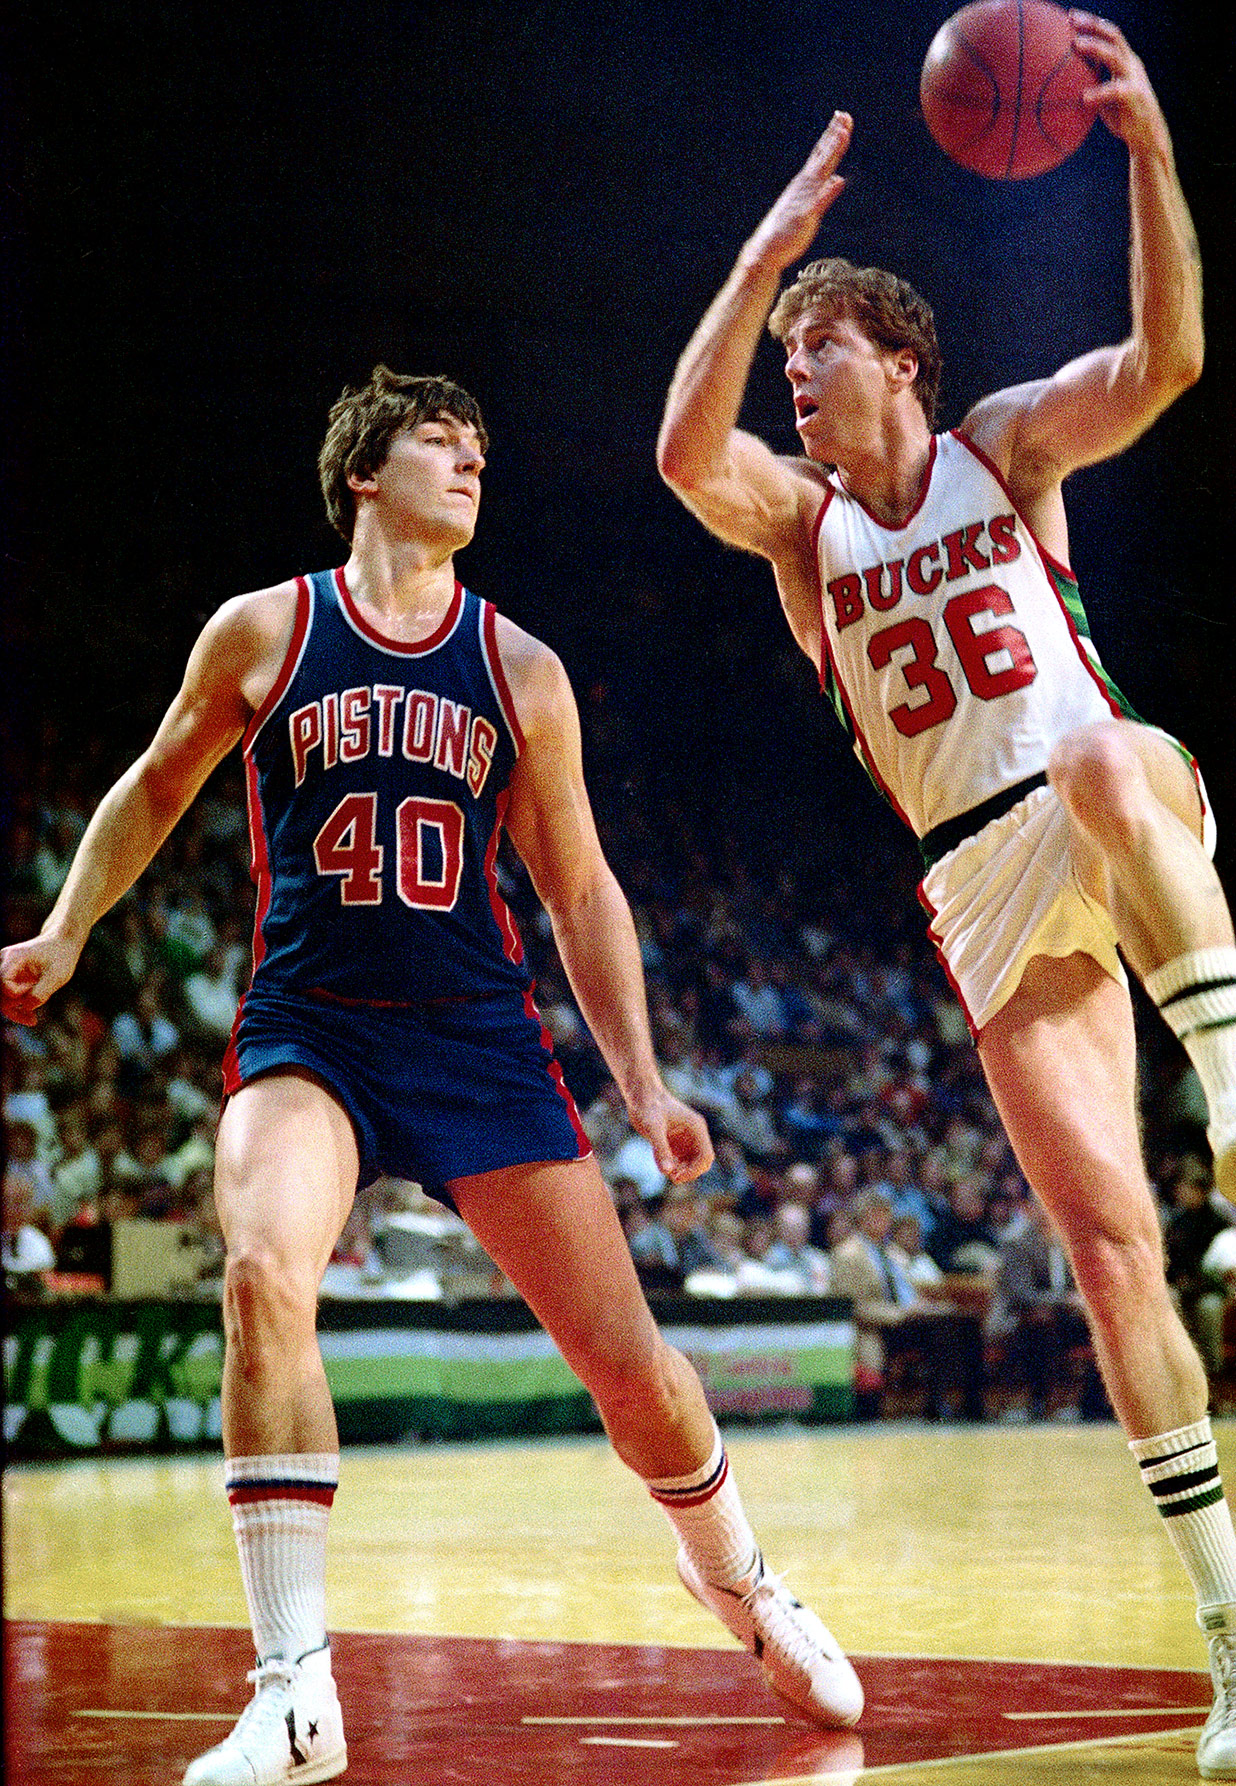 Pursuing Perfection: Bill Laimbeer